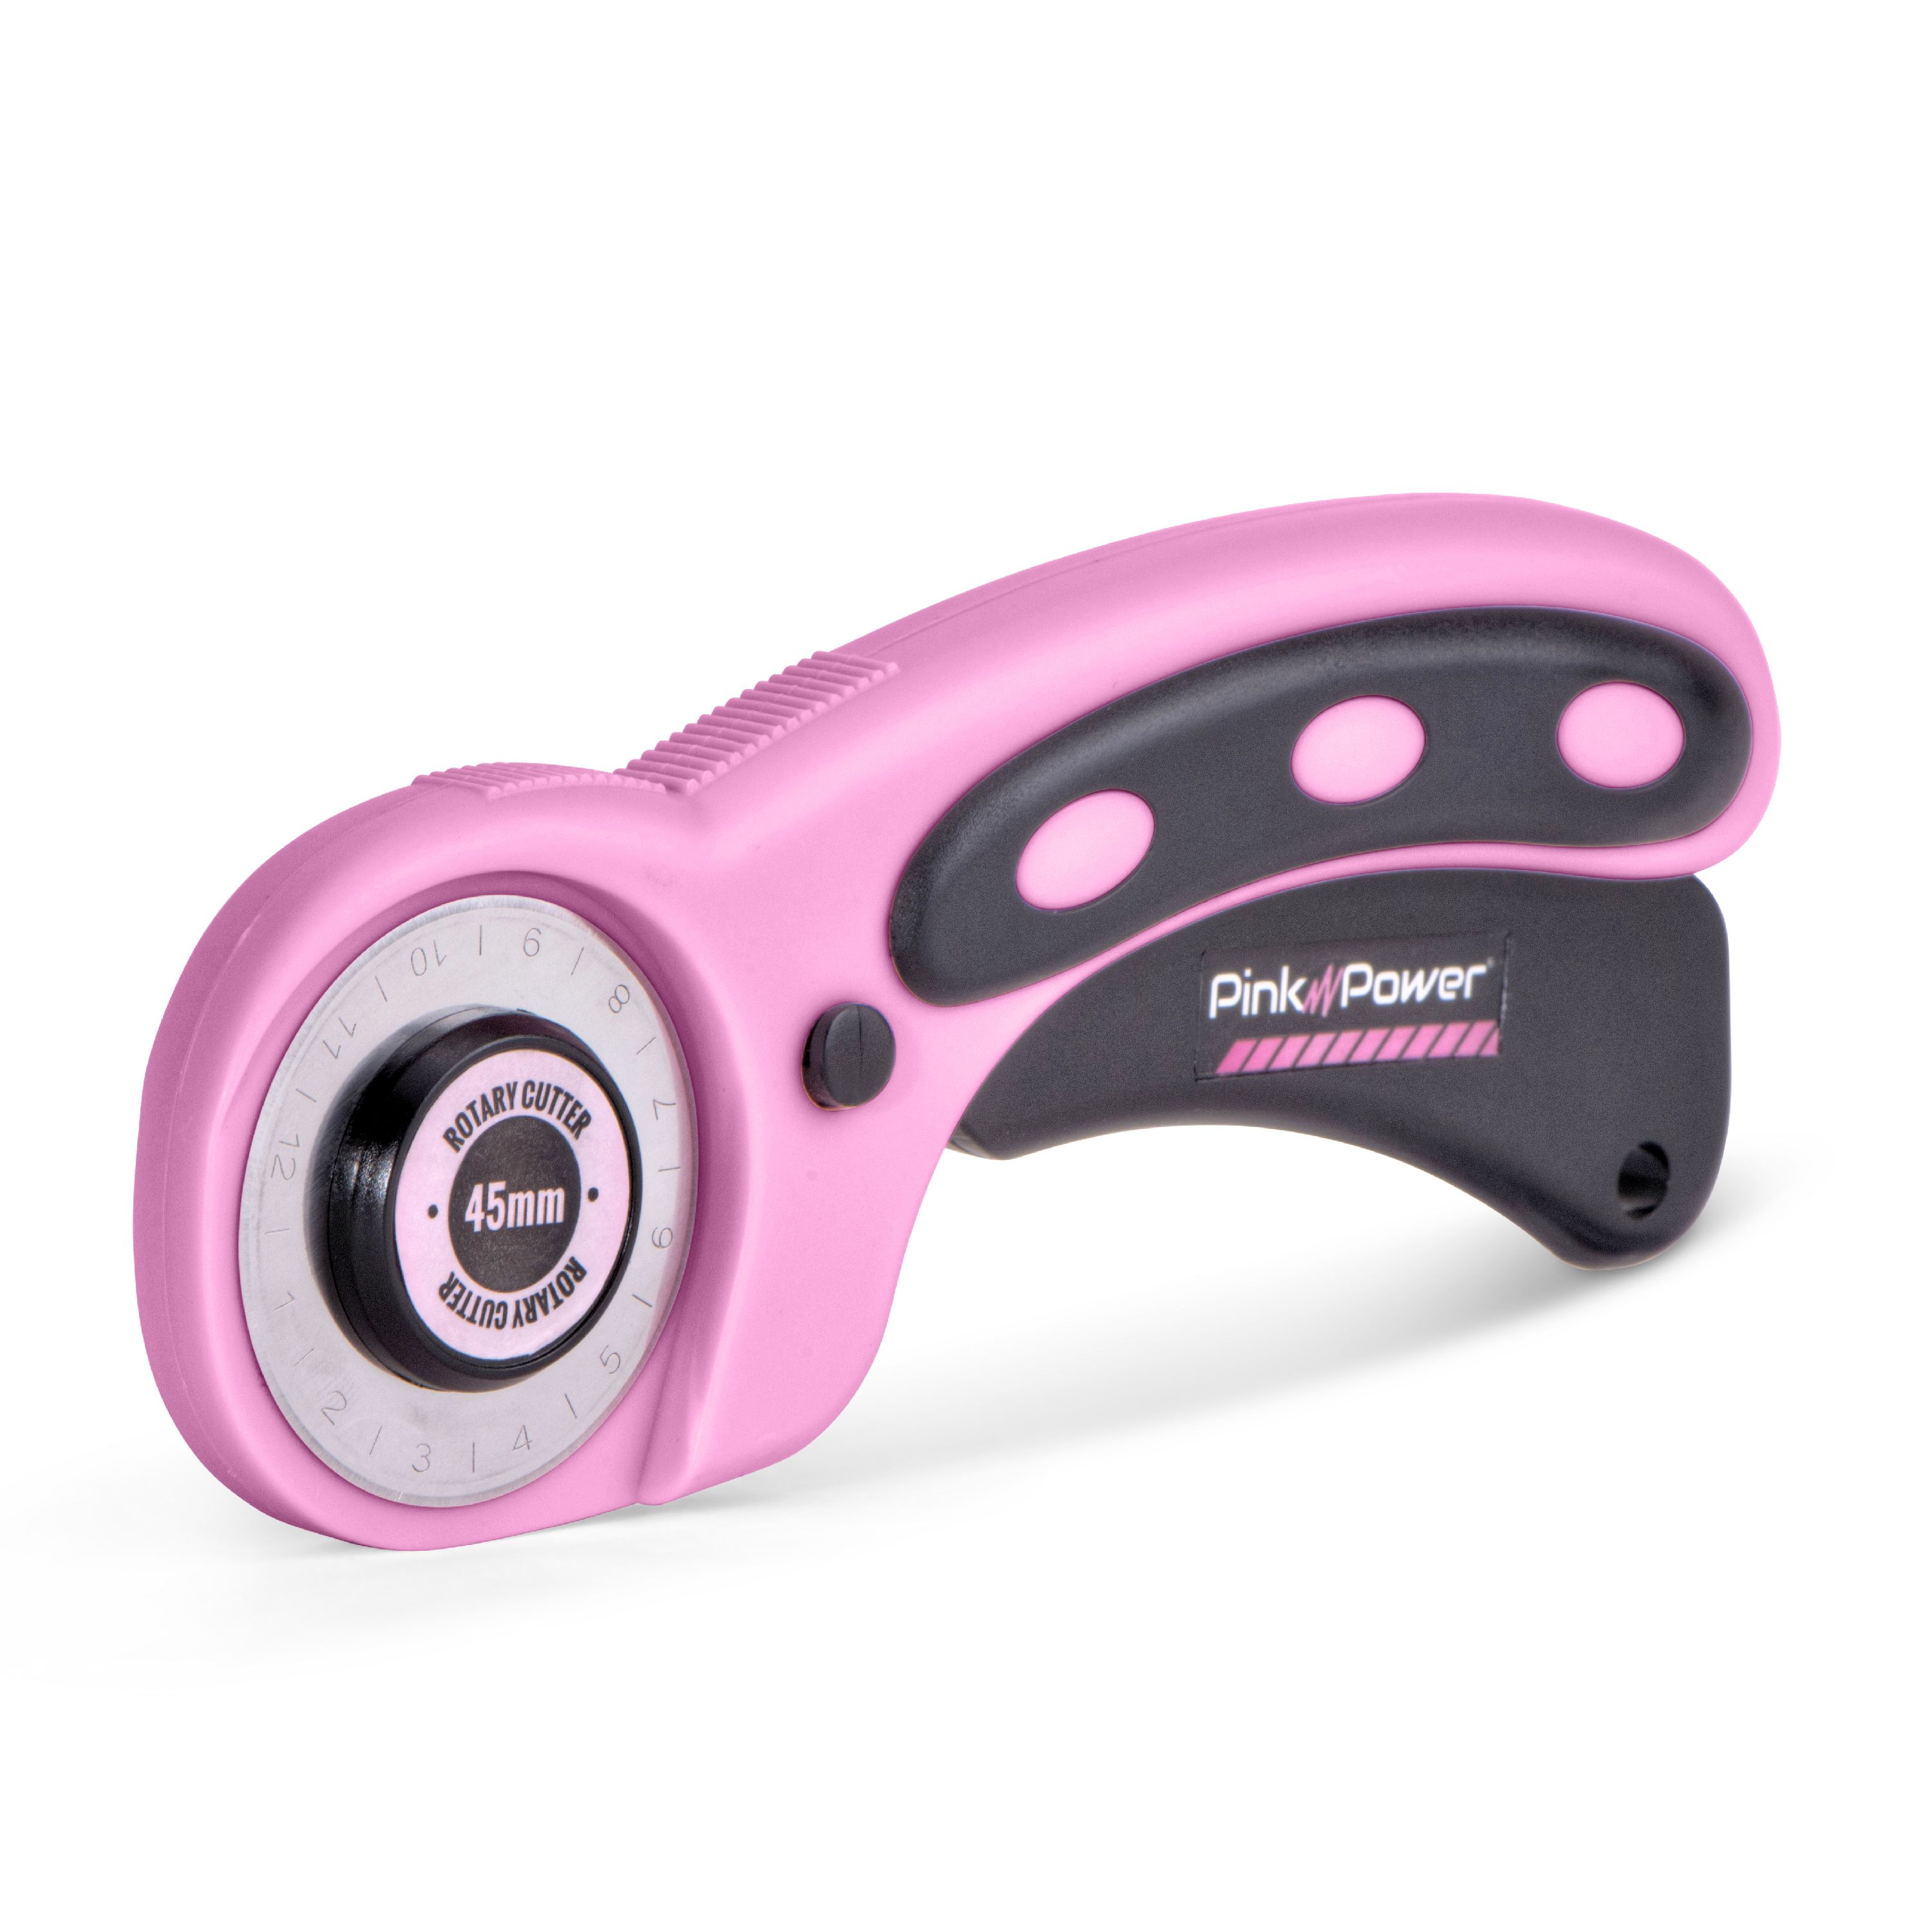 Pink Power 45mm Rotary Cutter for Fabric, Scrapbooking, Quilting and Sewing